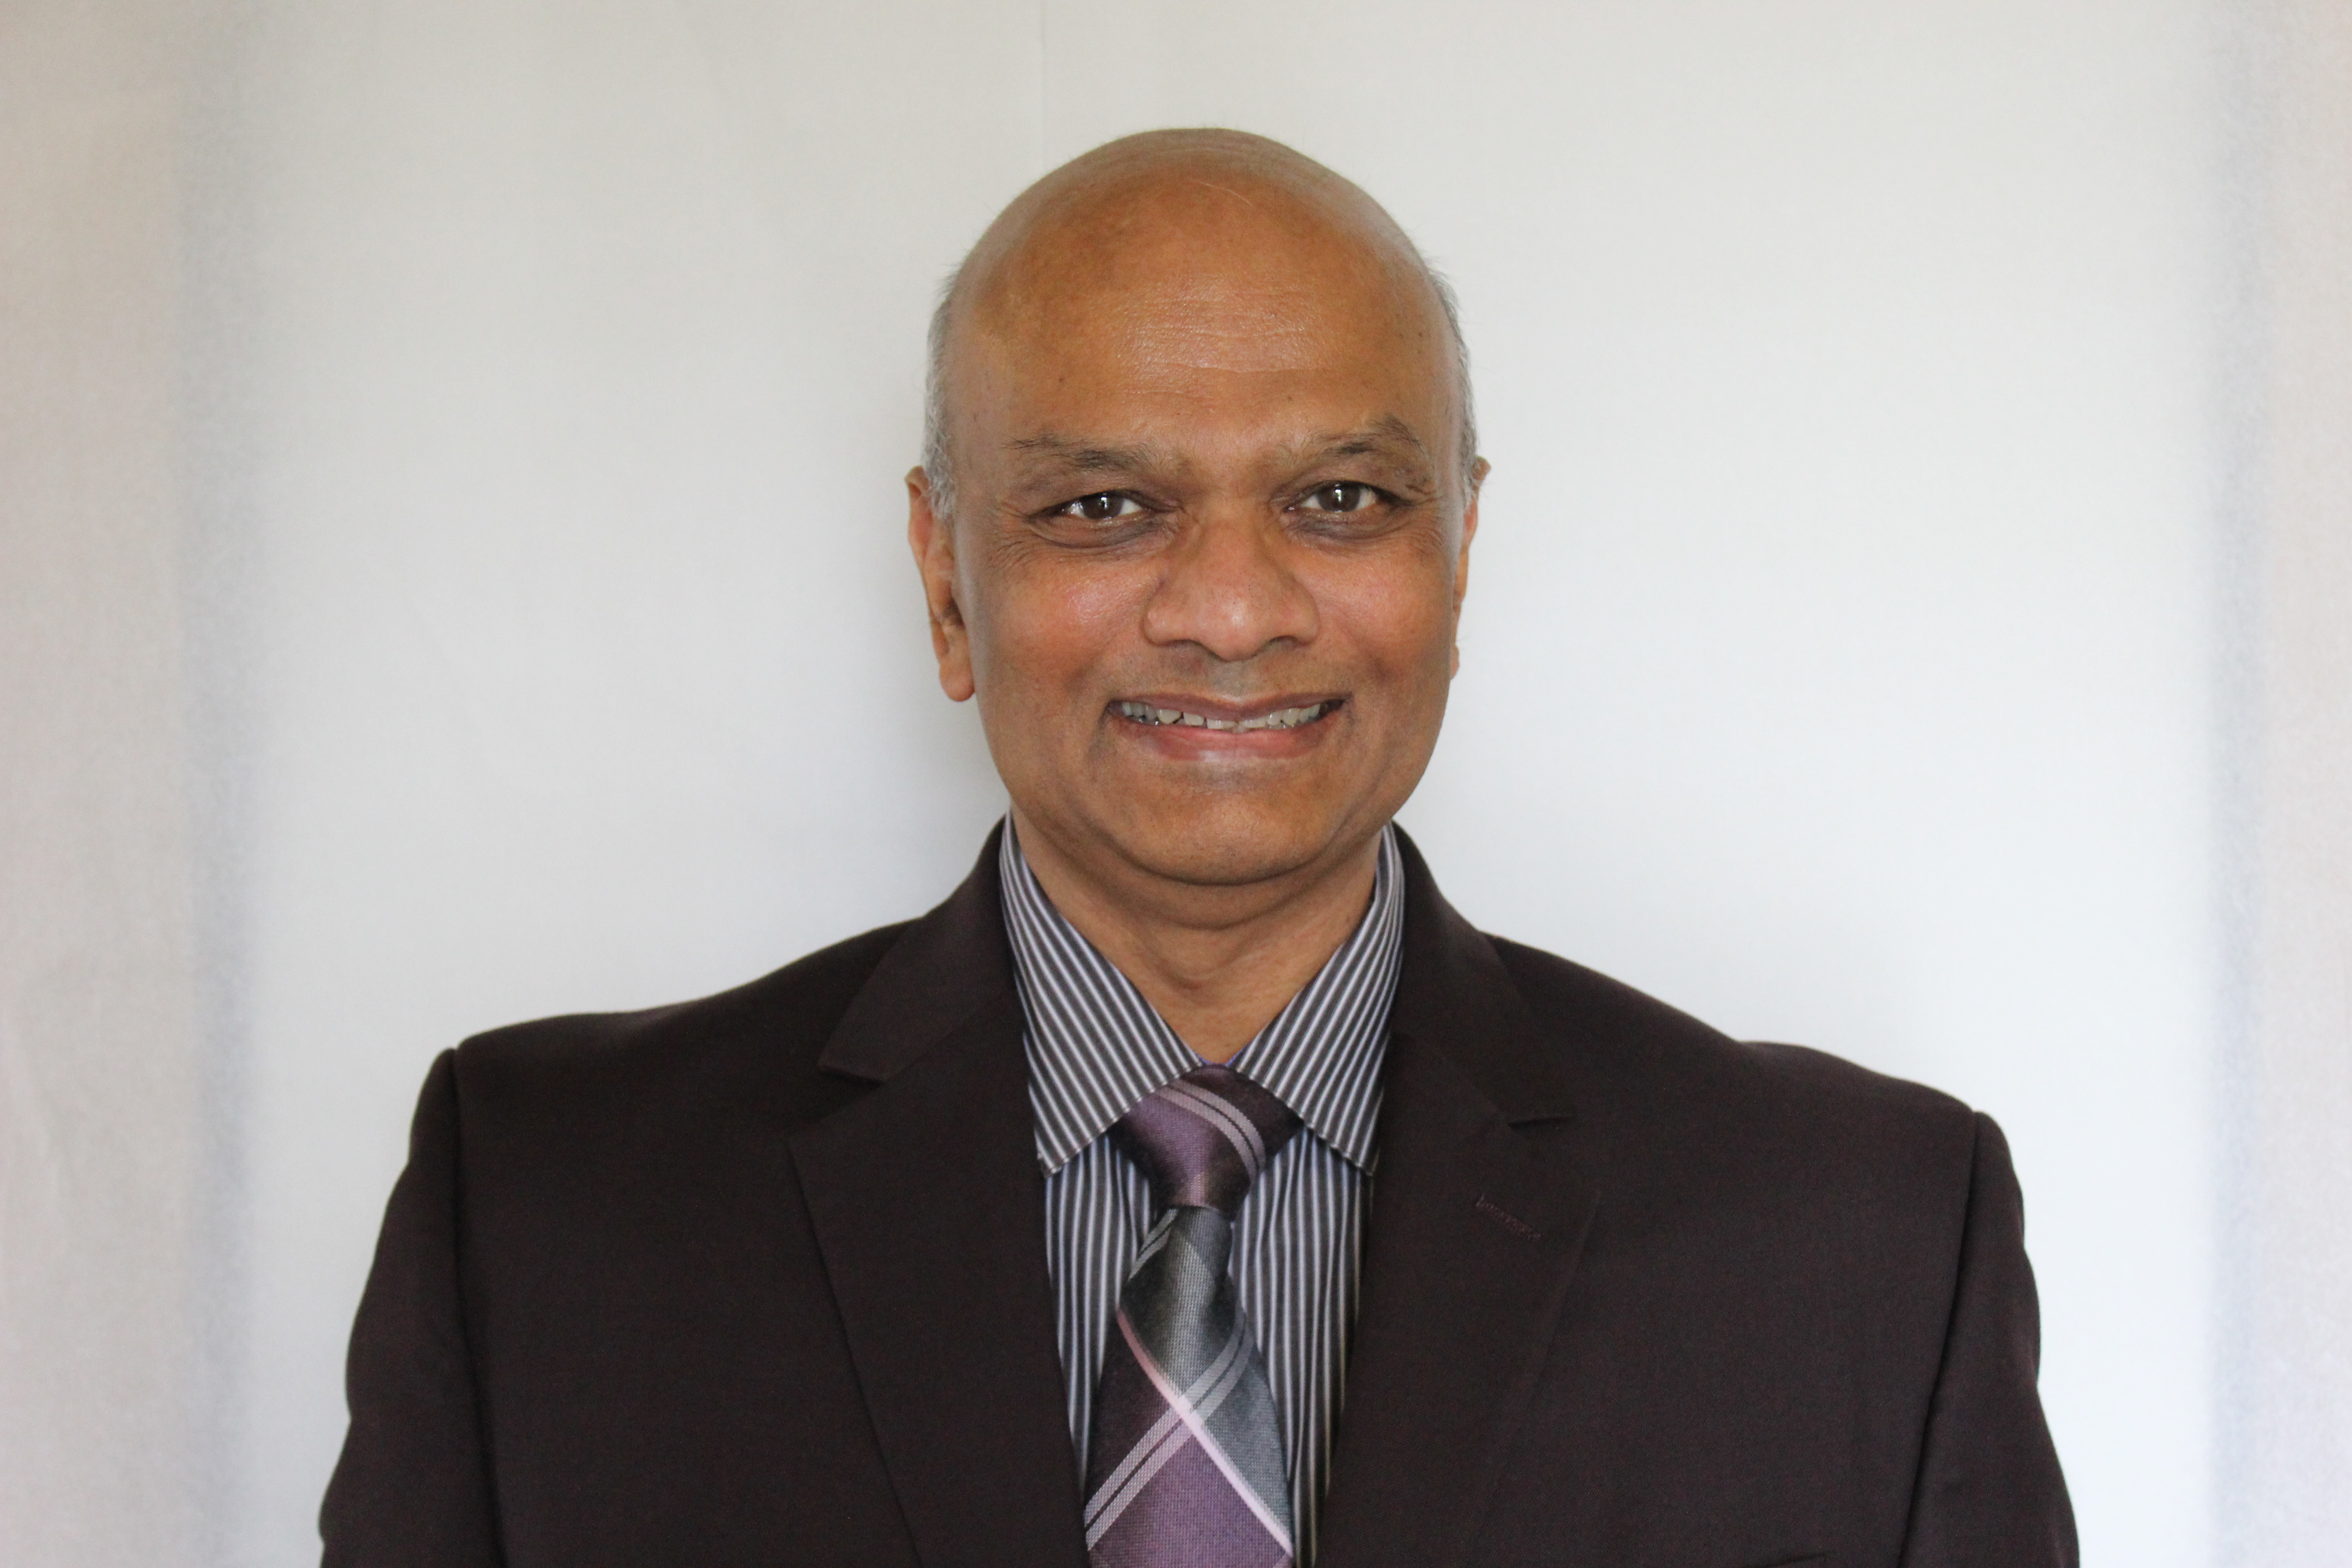 Yatin Shah, MD – Founder of Primary Care Joliet, Sunny Hill Medical Director